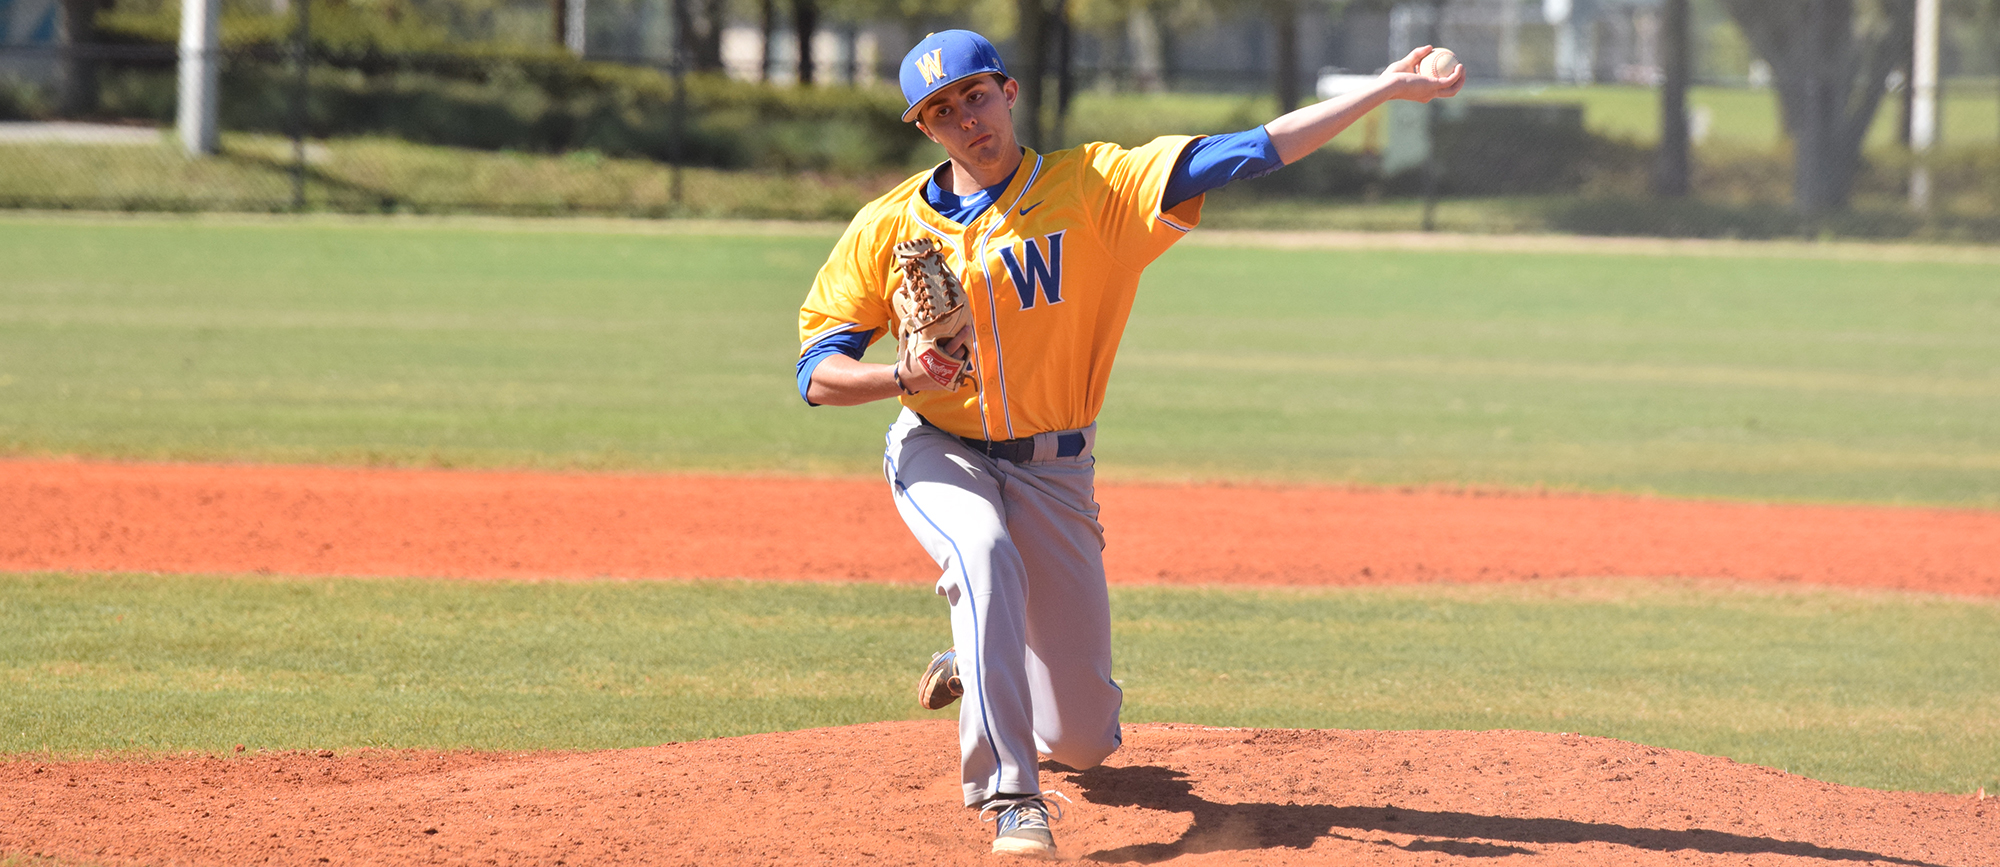 Sophomore left-hander Bob Hamel registered a complete game shutout in game one of Western New England's doubleheader sweep of Eastern Nazarene on Friday.